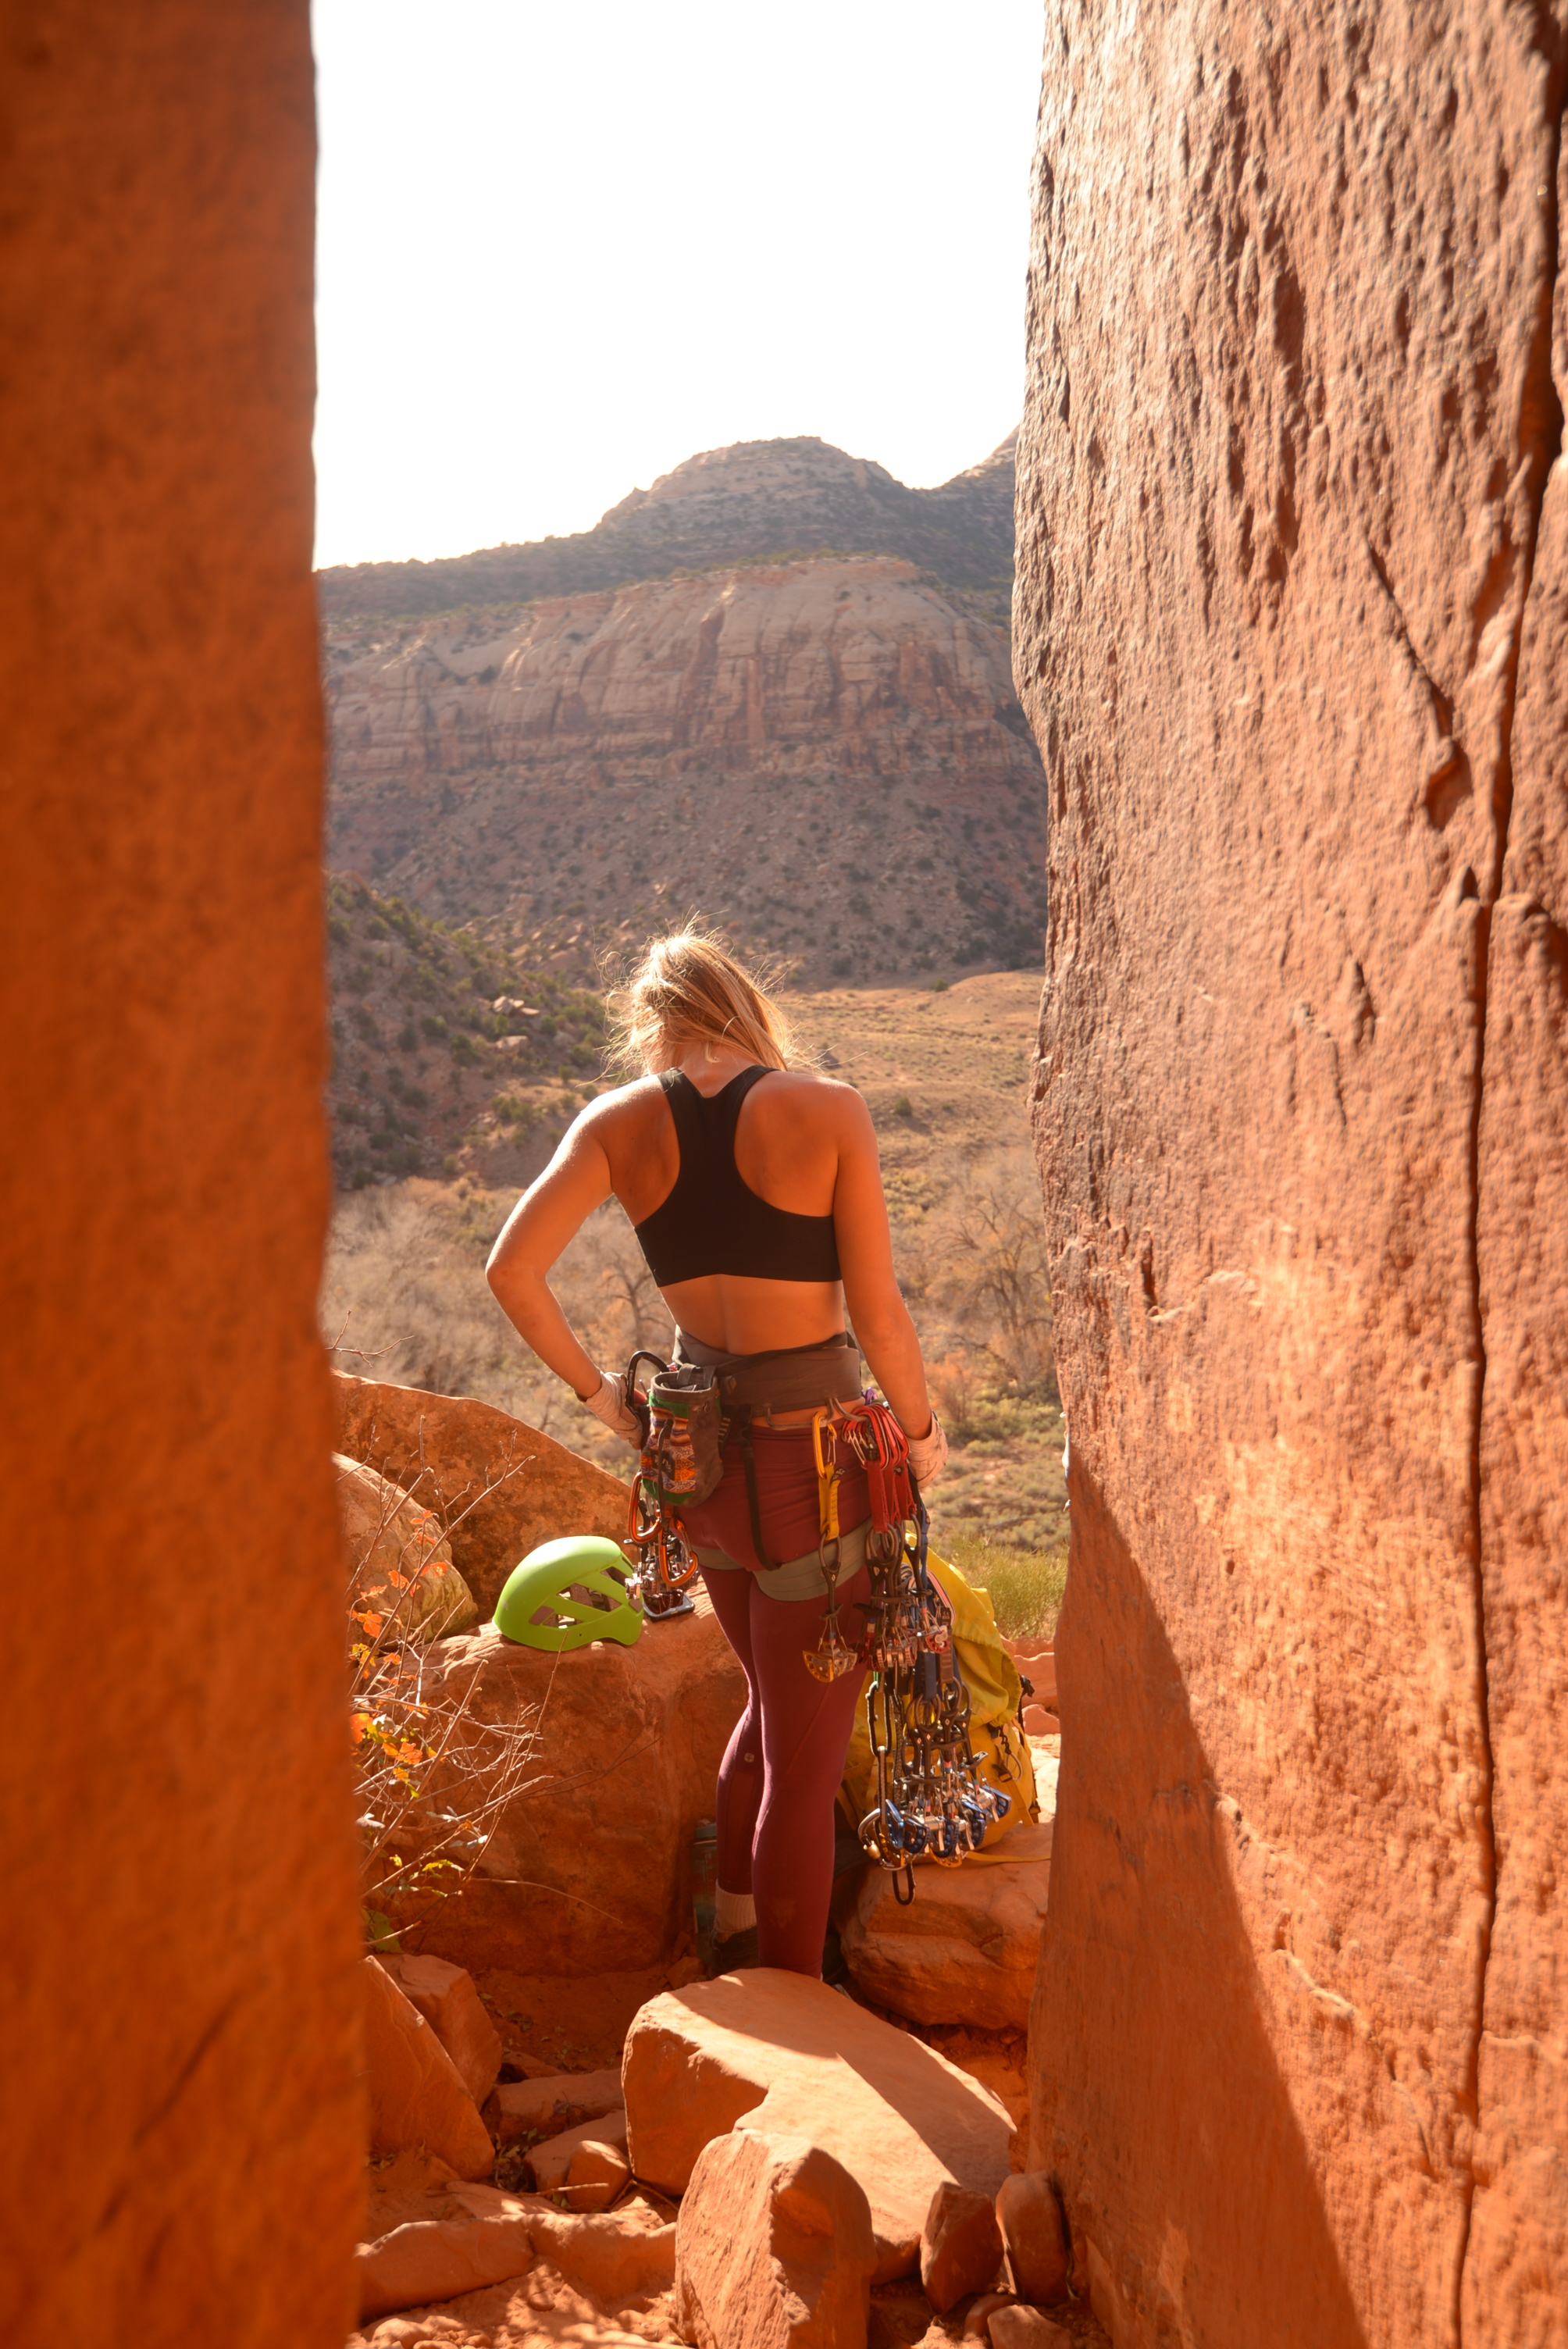 Meagan gears up for Cave route 10d